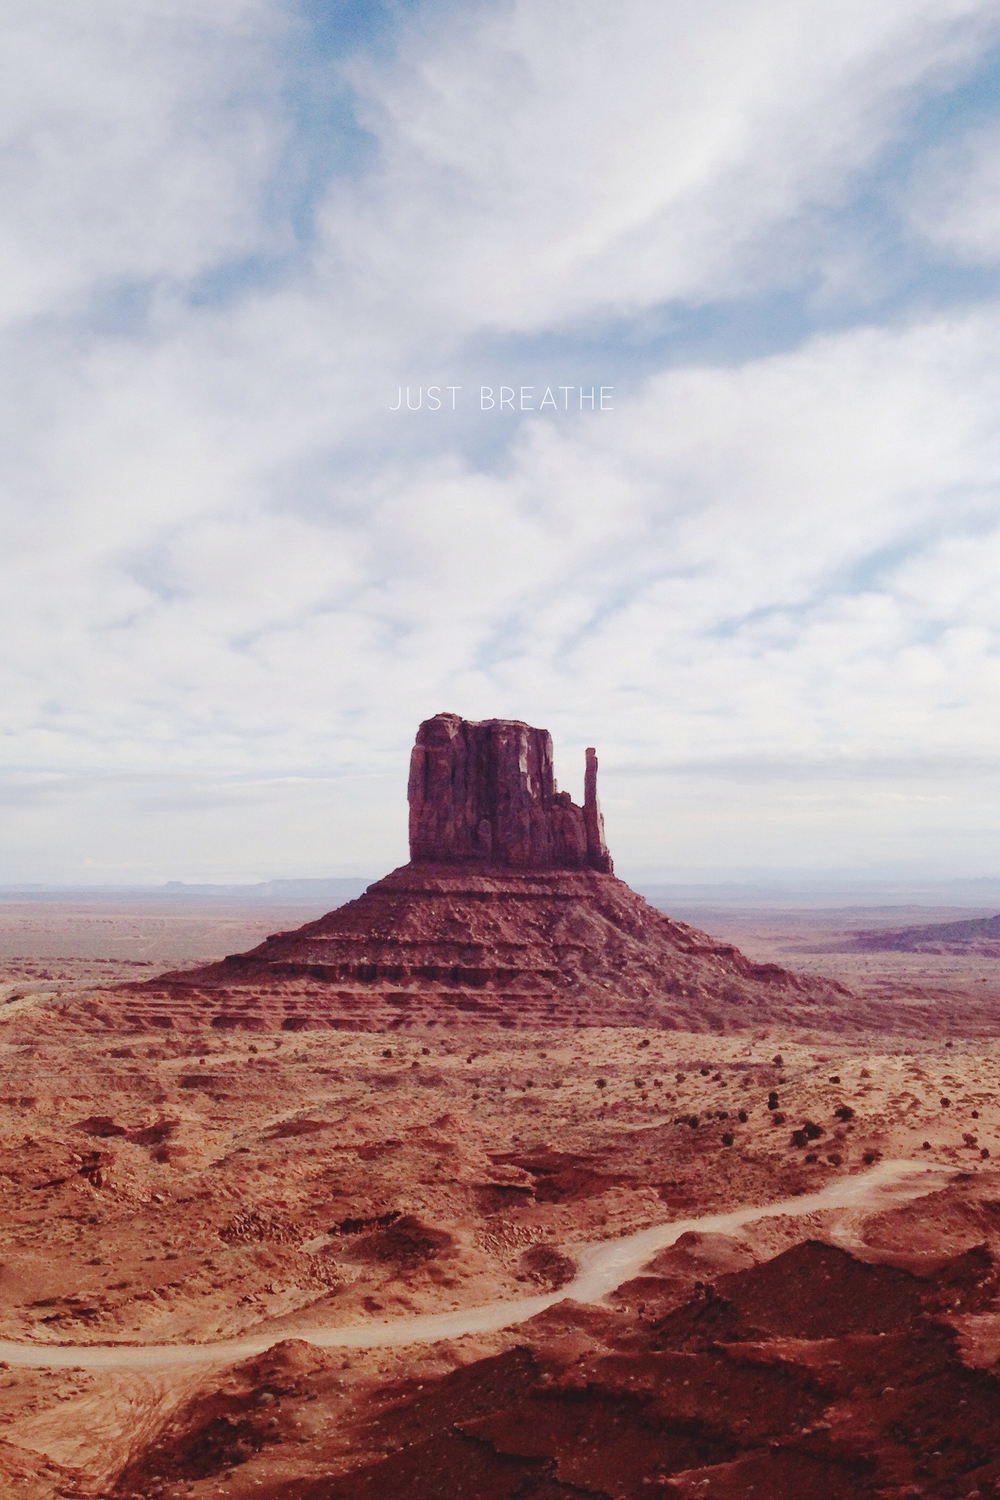 monument valley via kevinrussend on flickr